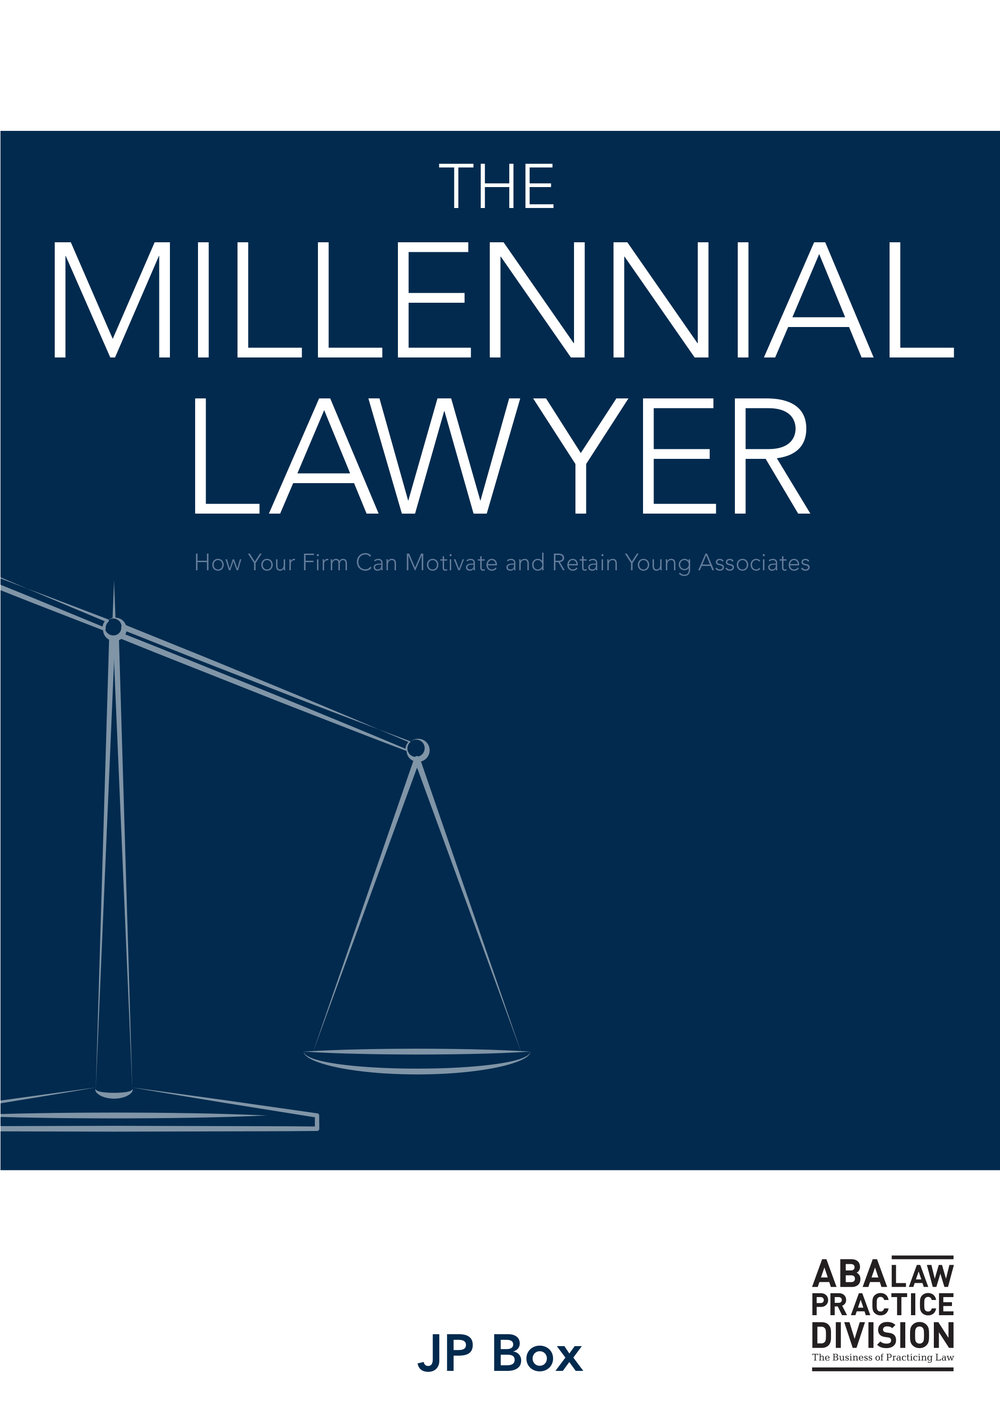 Millennial Lawyer (Front Cover) copy.jpg